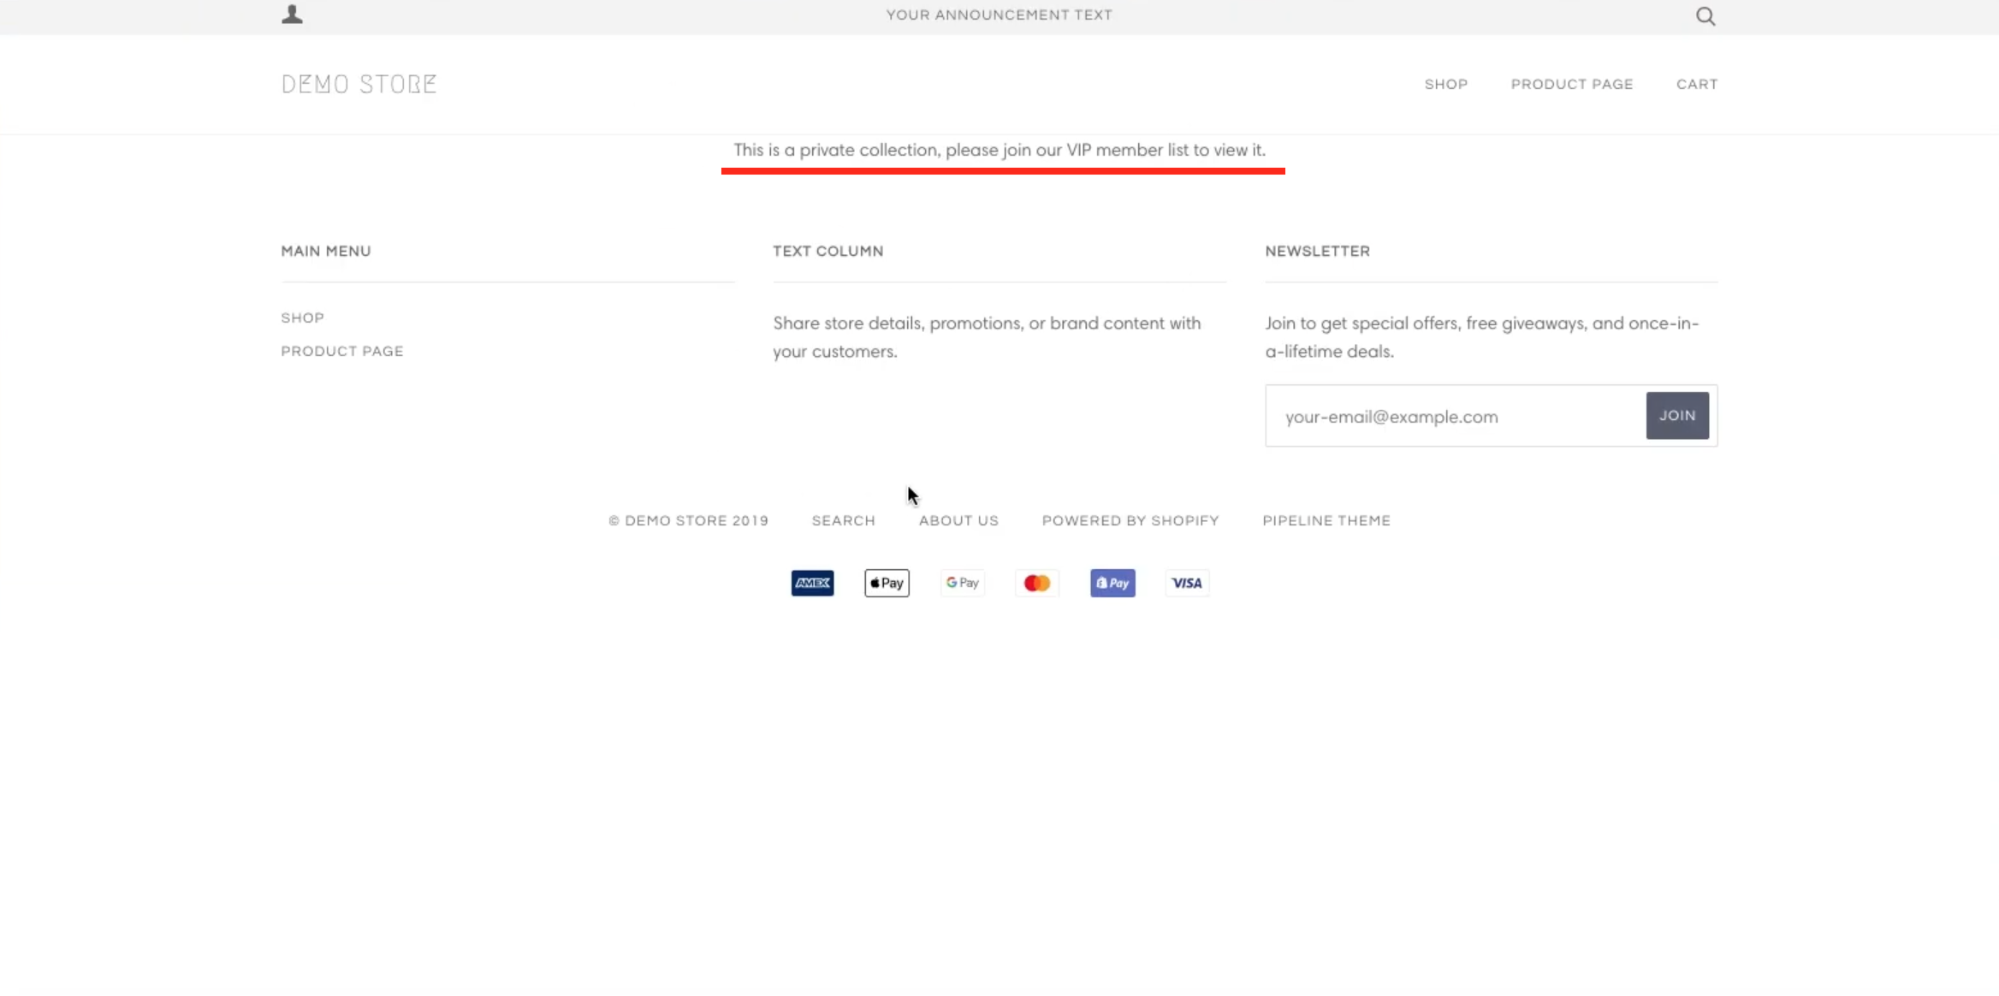 Screenshot of the rejection page because the customer is not tagged VIP